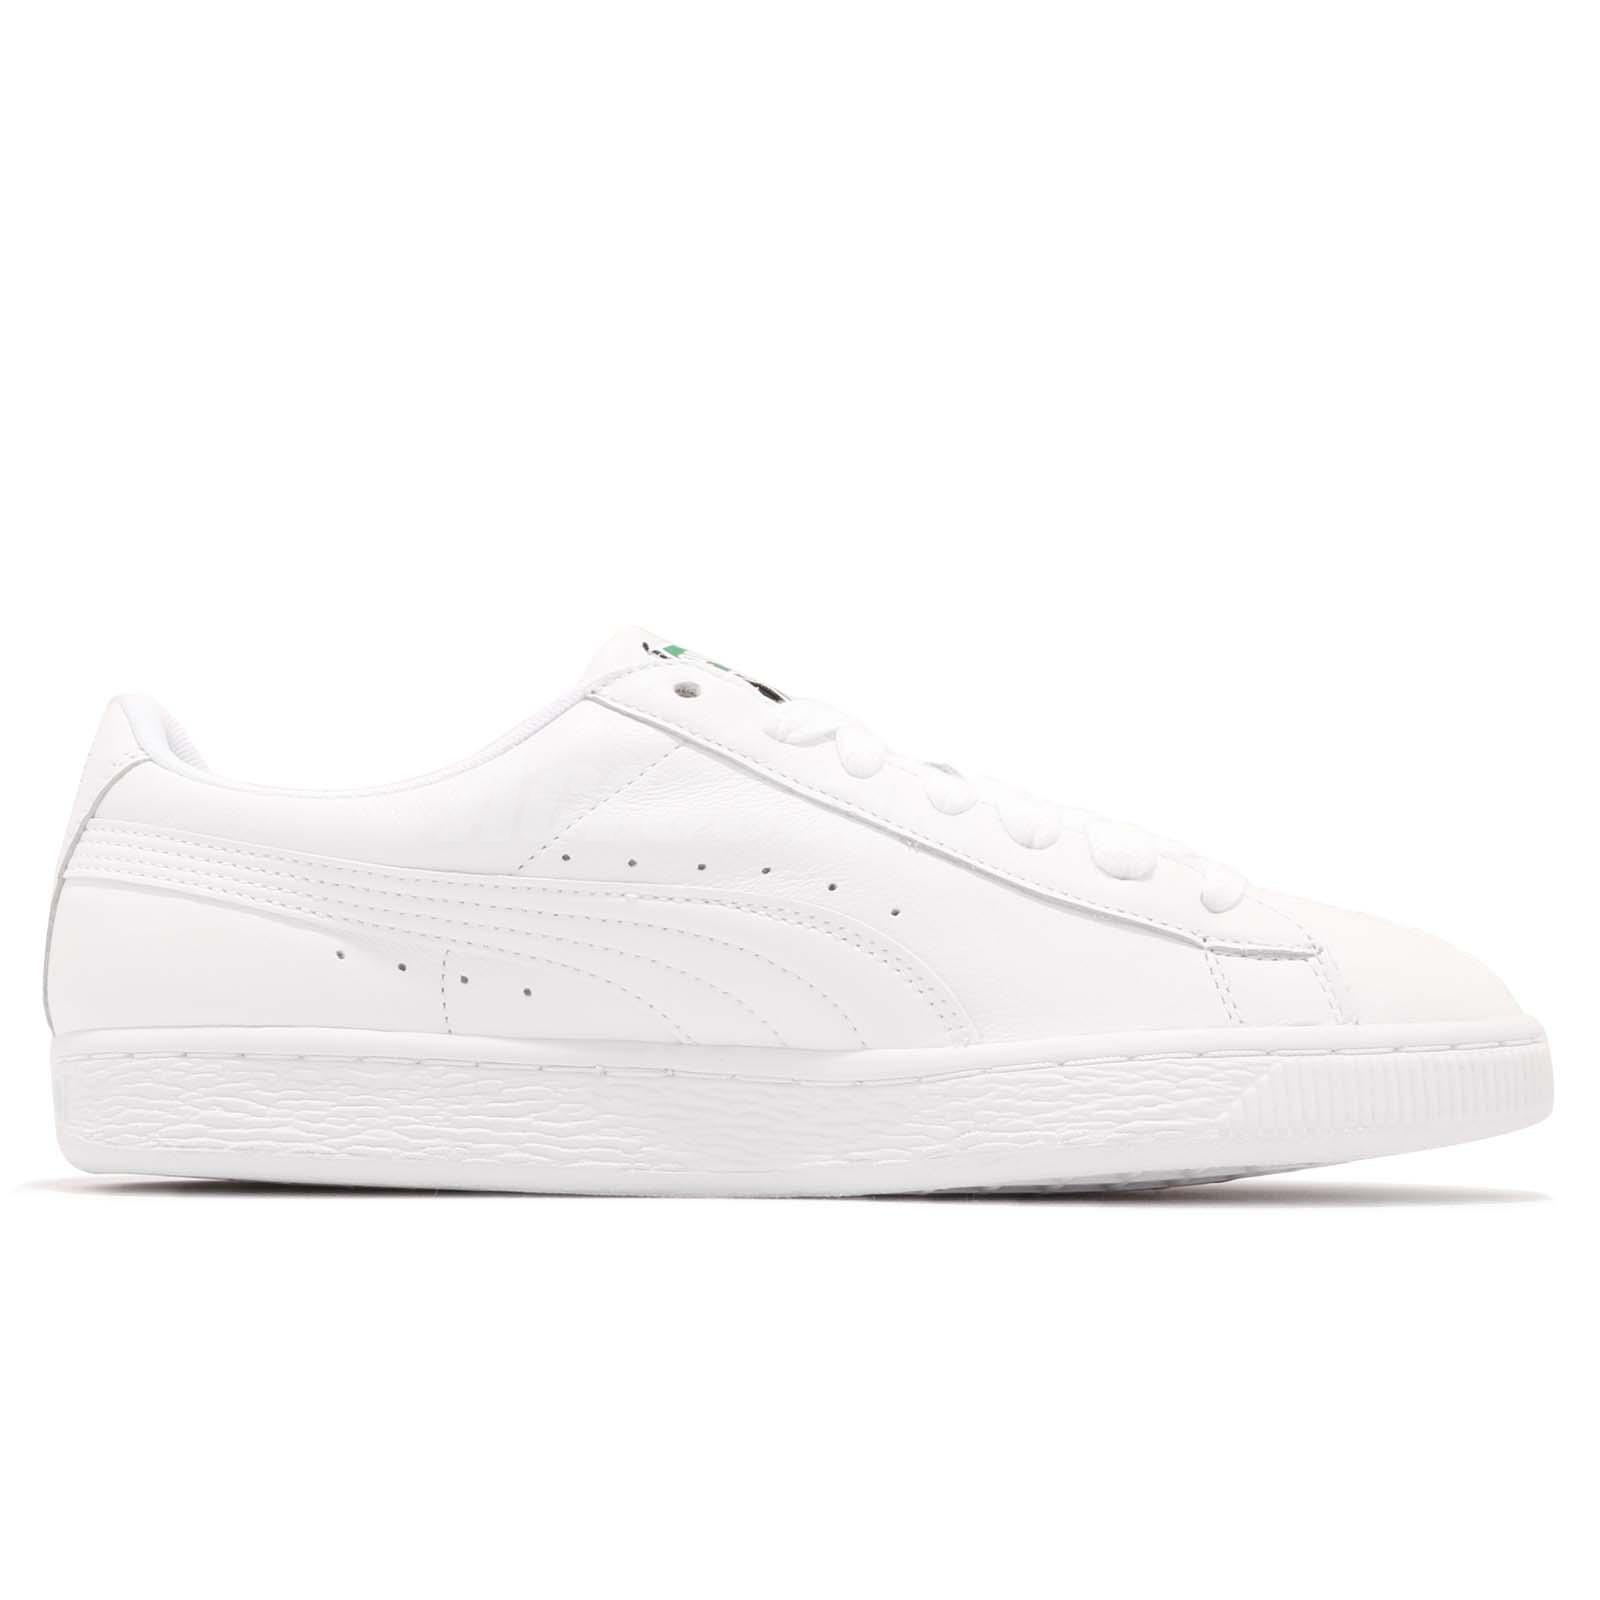 ed54669012a6 Puma Basket Classic LFS White Leather Mens Casual Shoes Trainers ...